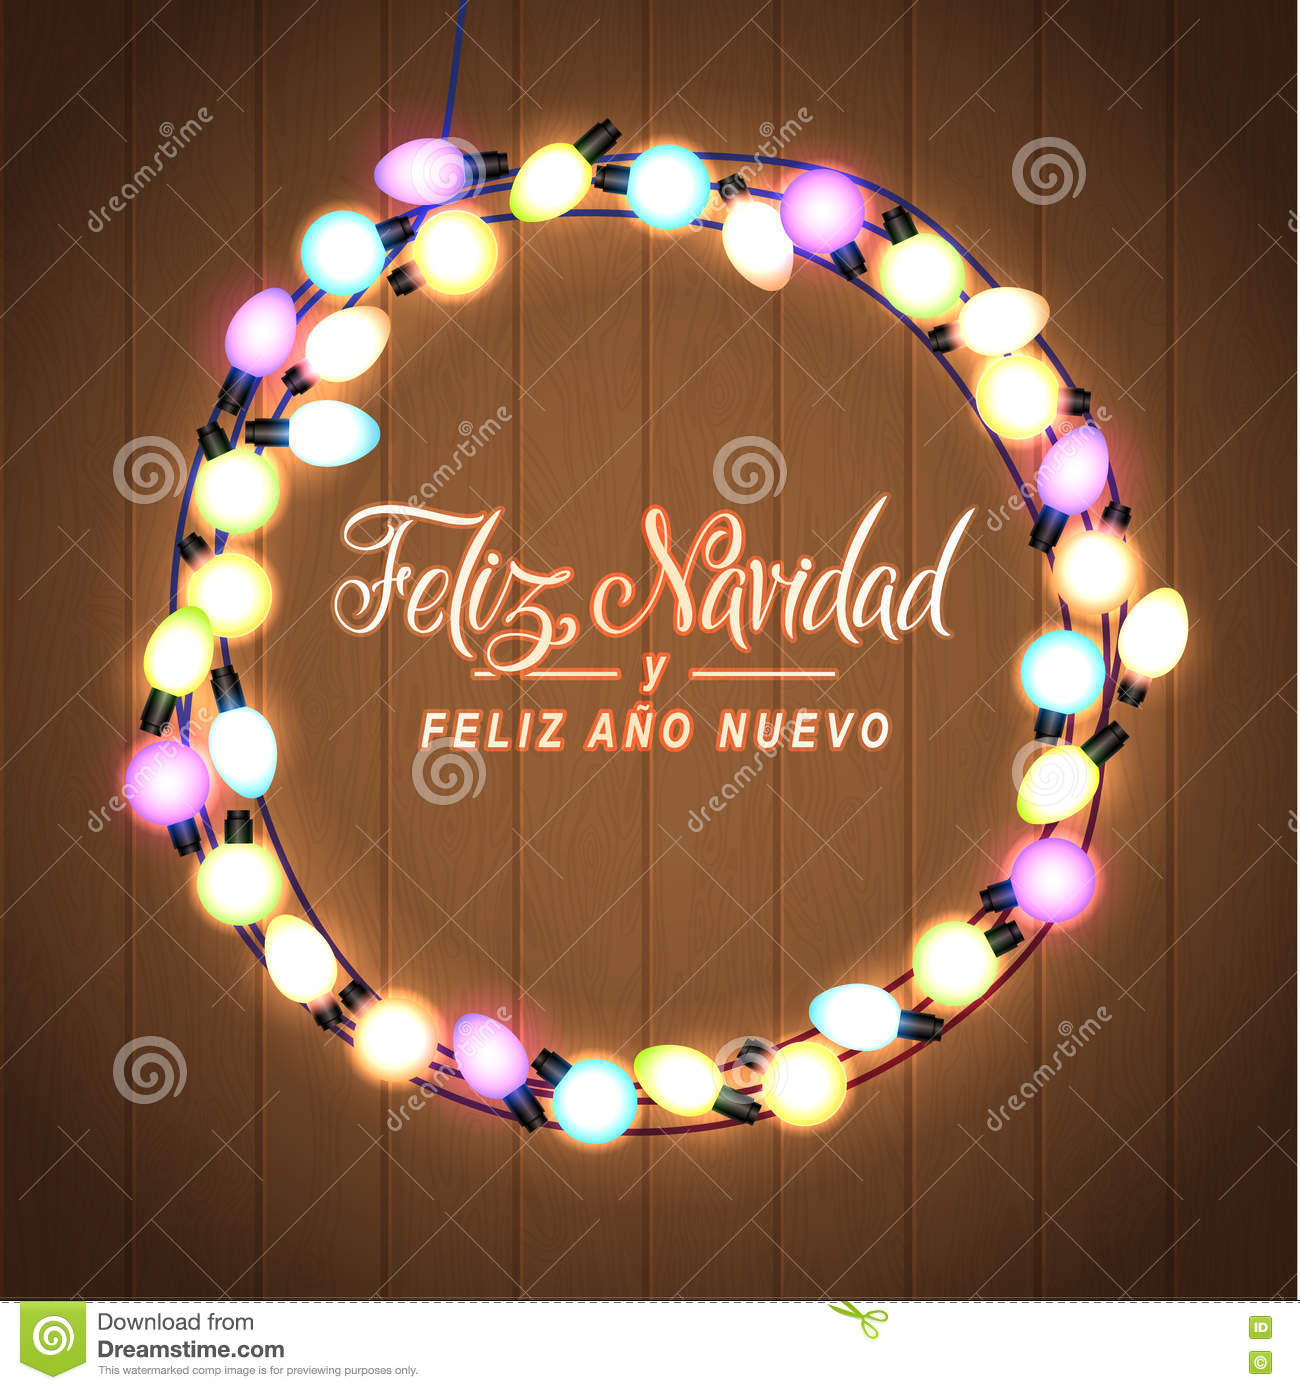 download merry christmas and happy new year spanish language glowing christmas lights wreath for - Merry Christmas And Happy New Year In Spanish